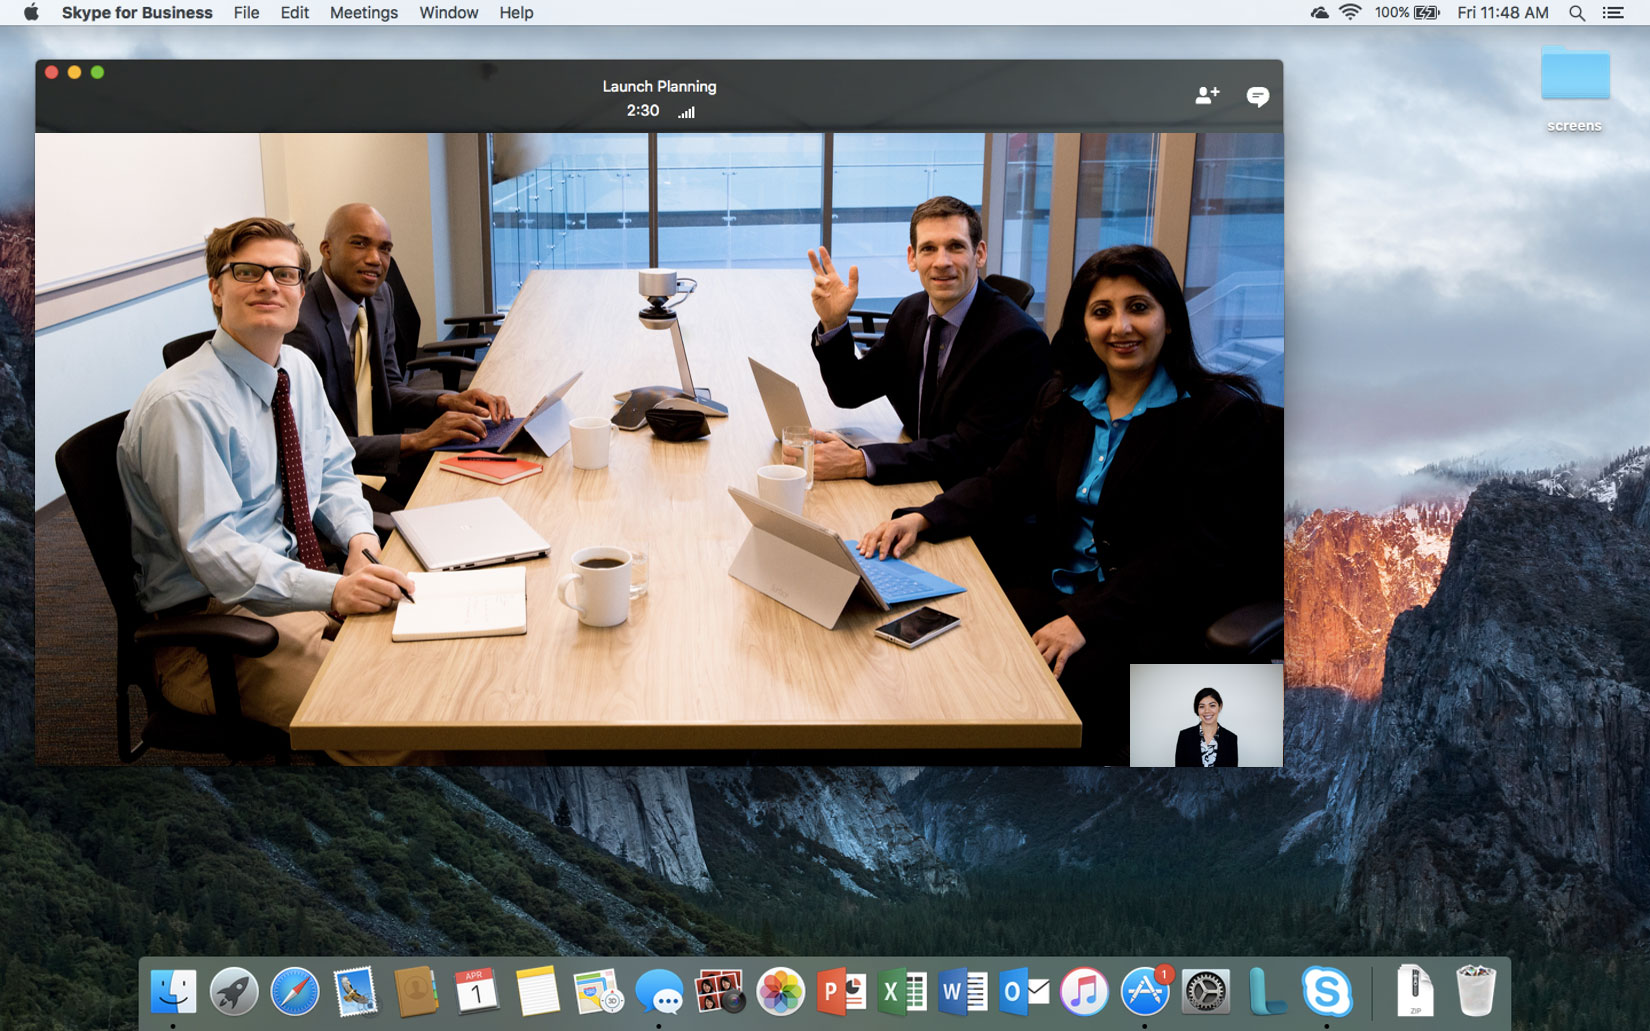 Skype for Business per Mac